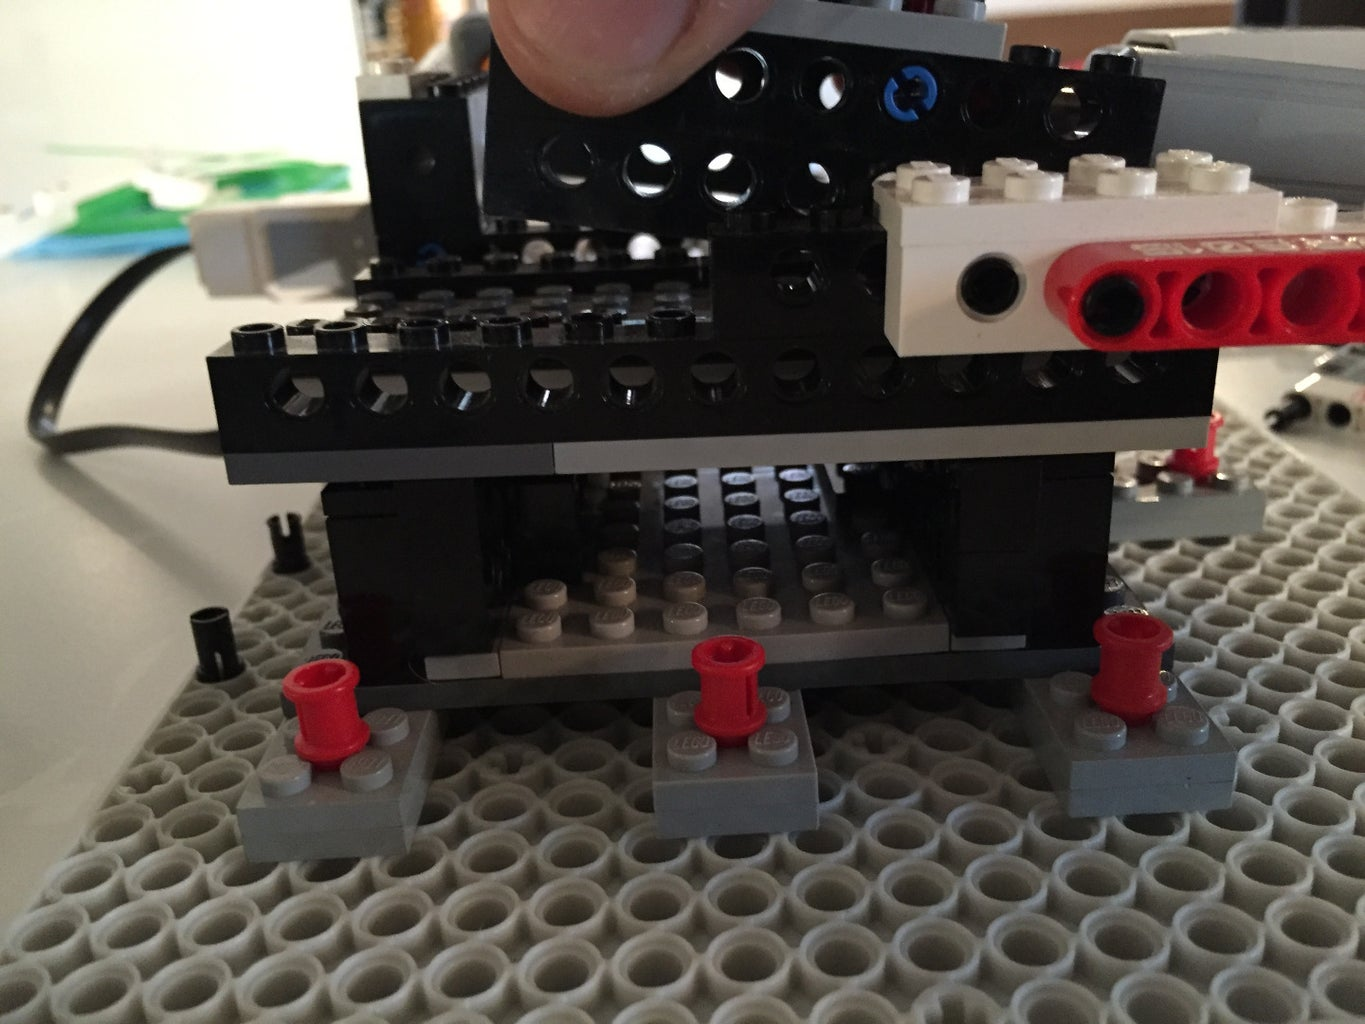 The X, Y, Plateforms Moved by LEGO Linear Actuator